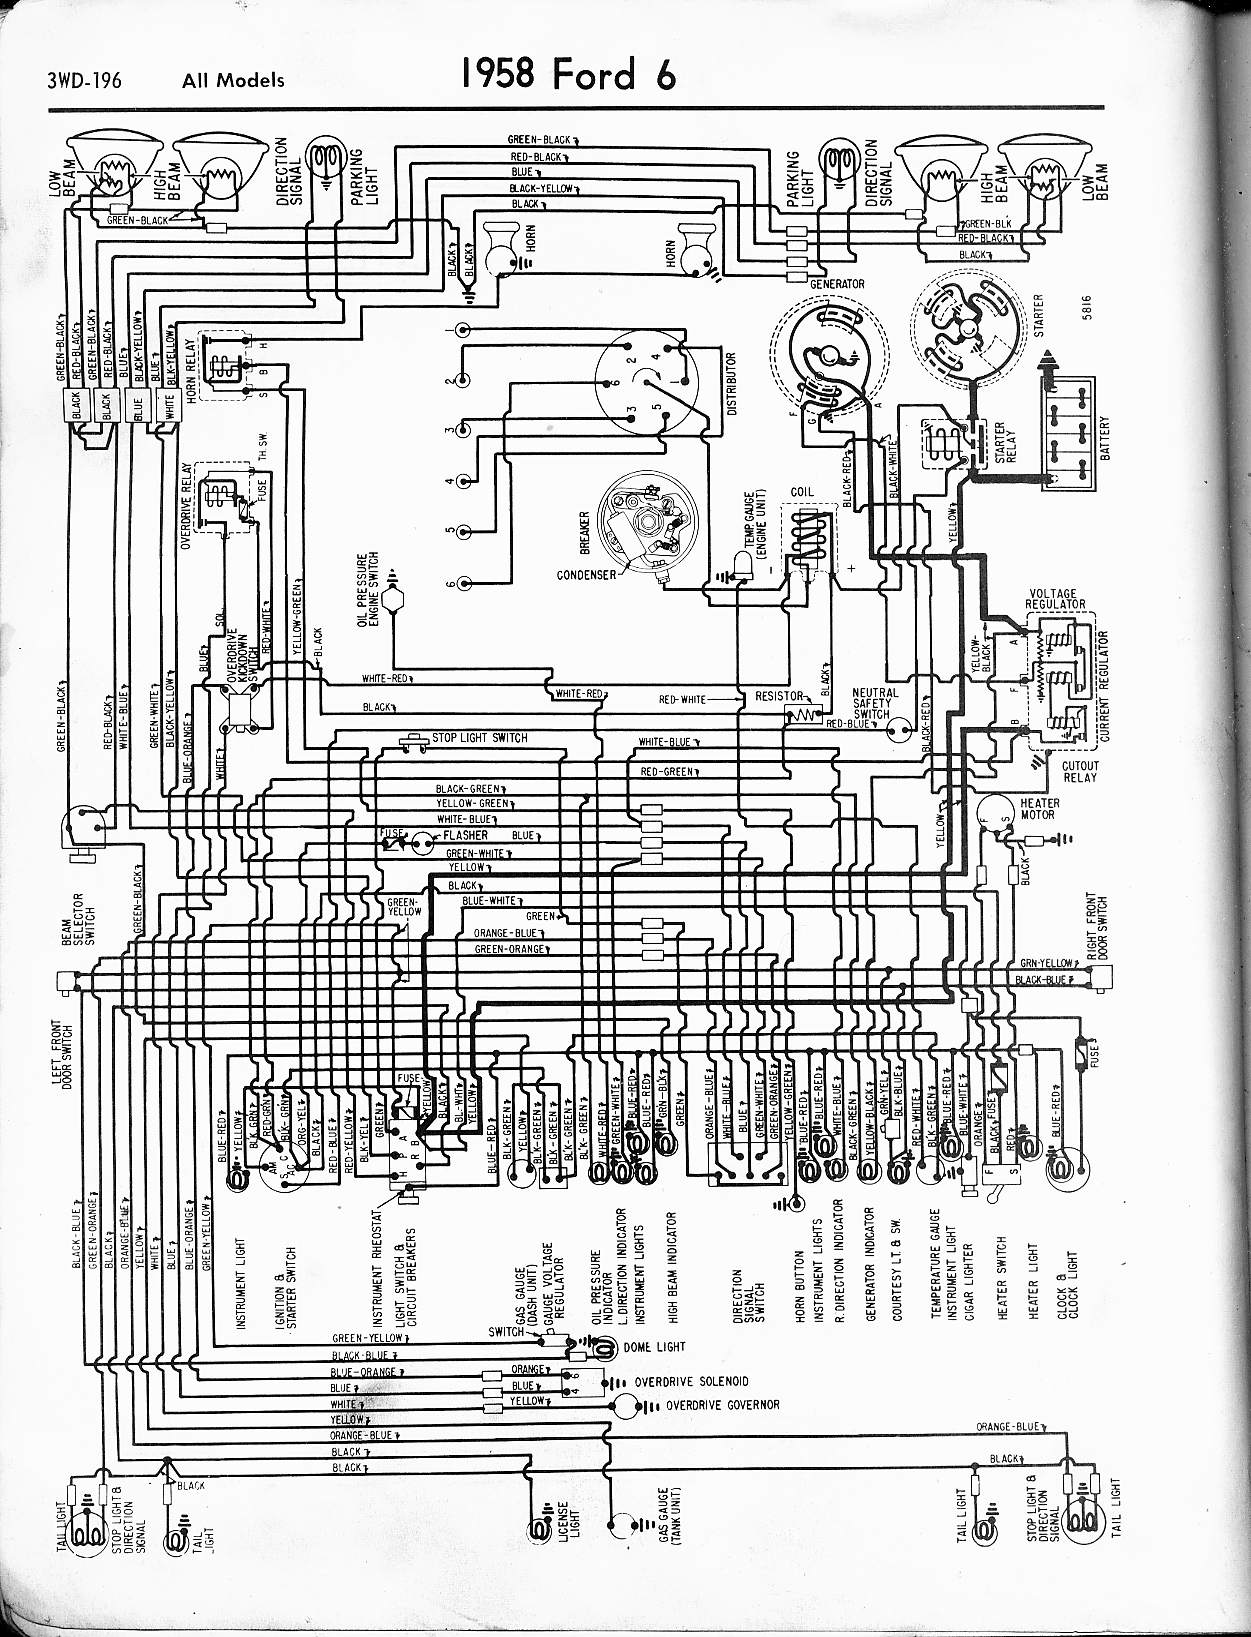 ford diagrams ford image wiring diagram 57 65 ford wiring diagrams on ford diagrams